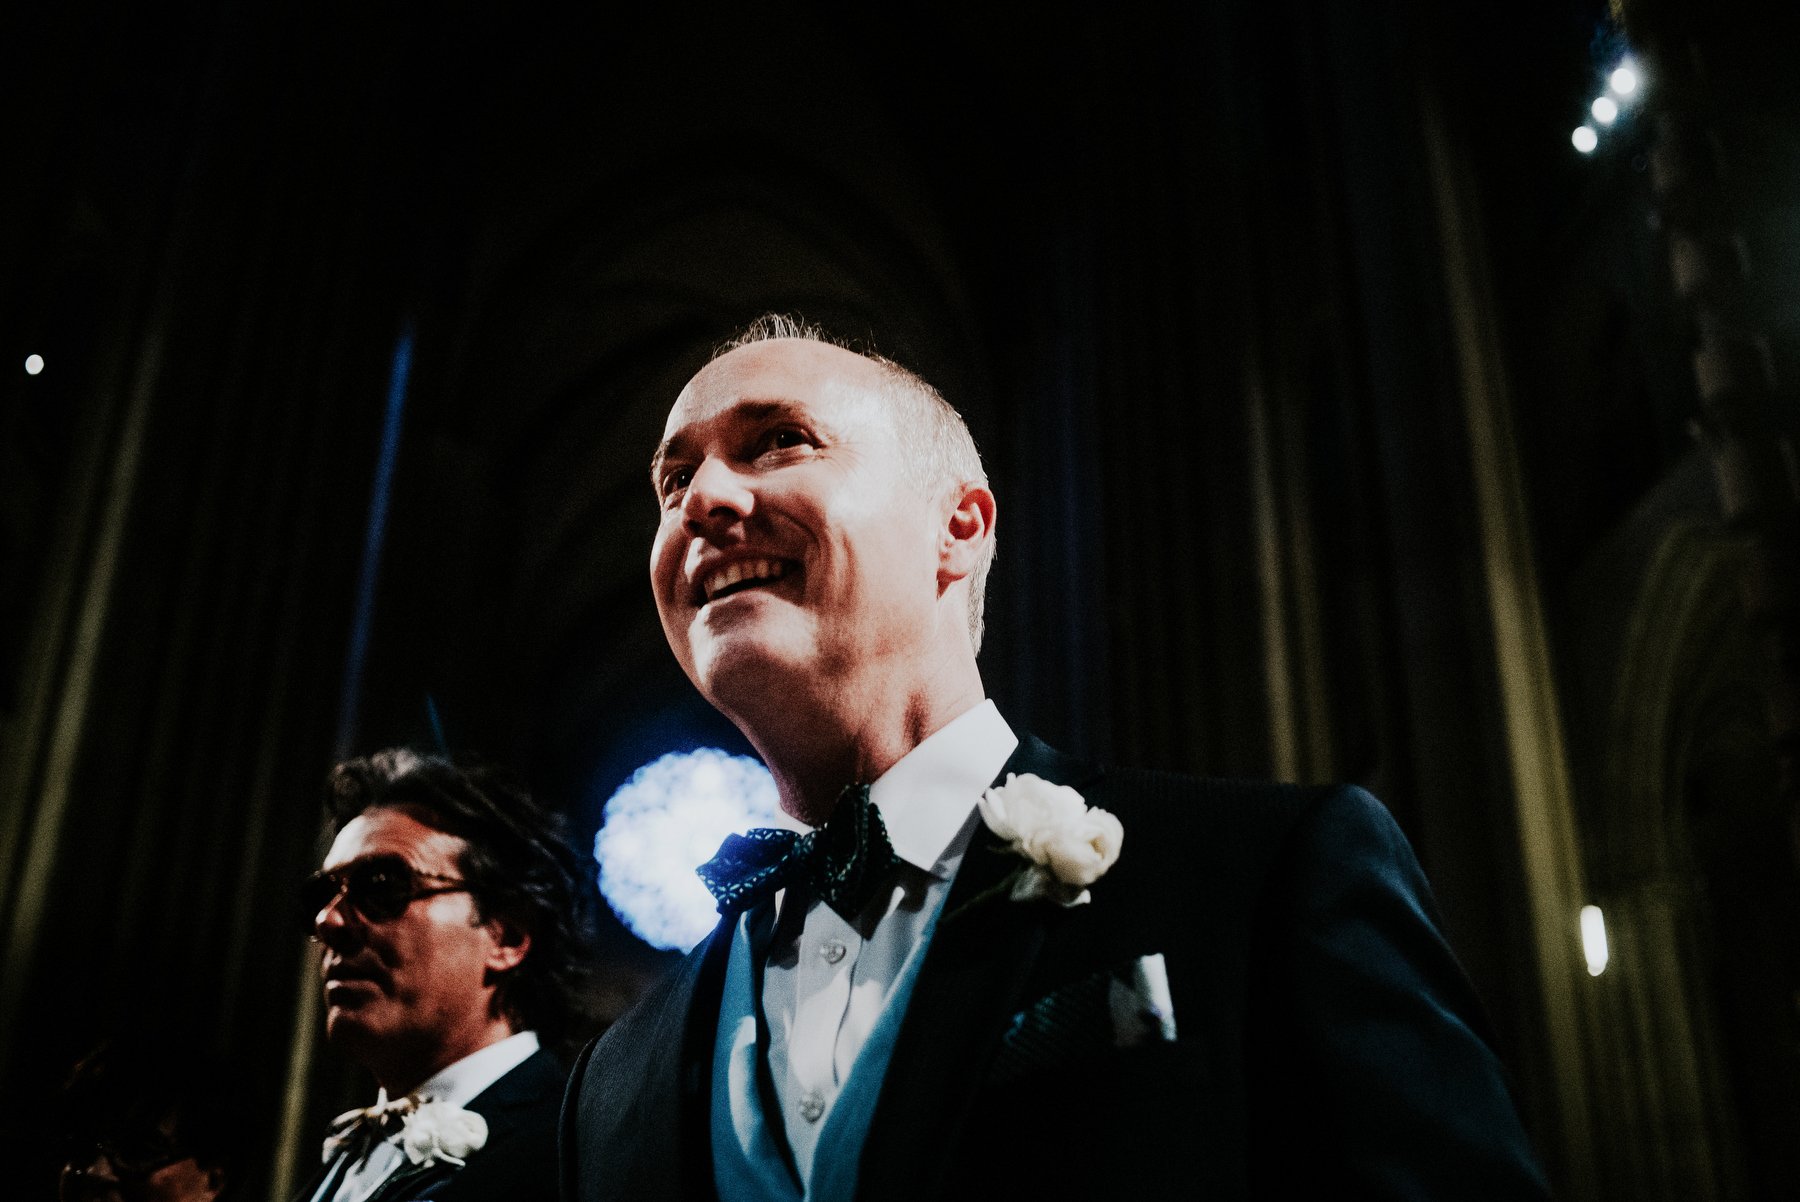 nyc gay wedding photographer